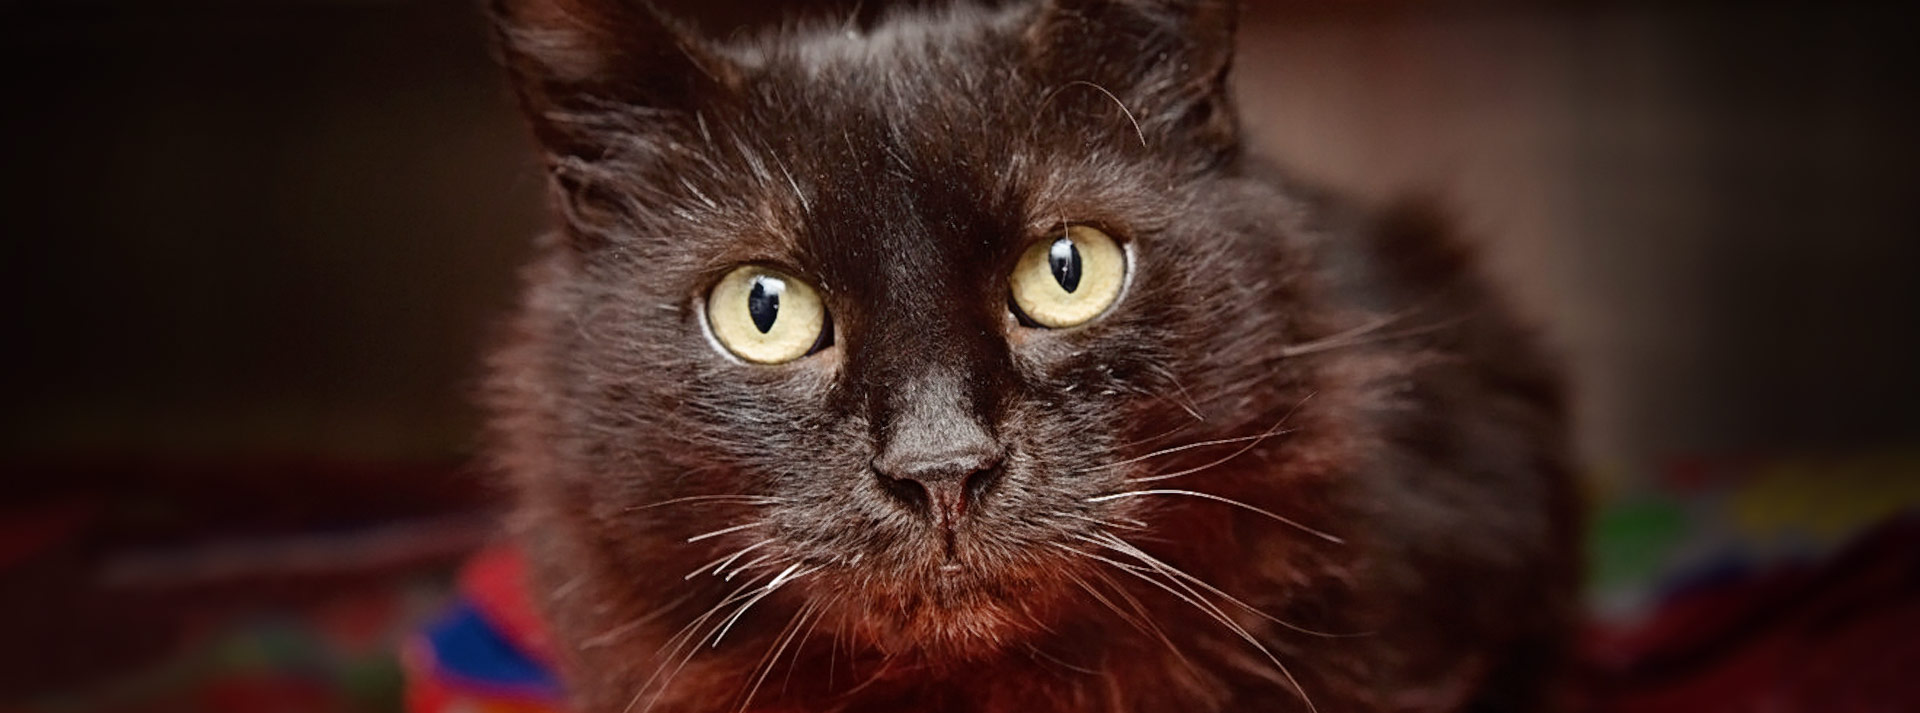 Black cat with green eyes looking at camera